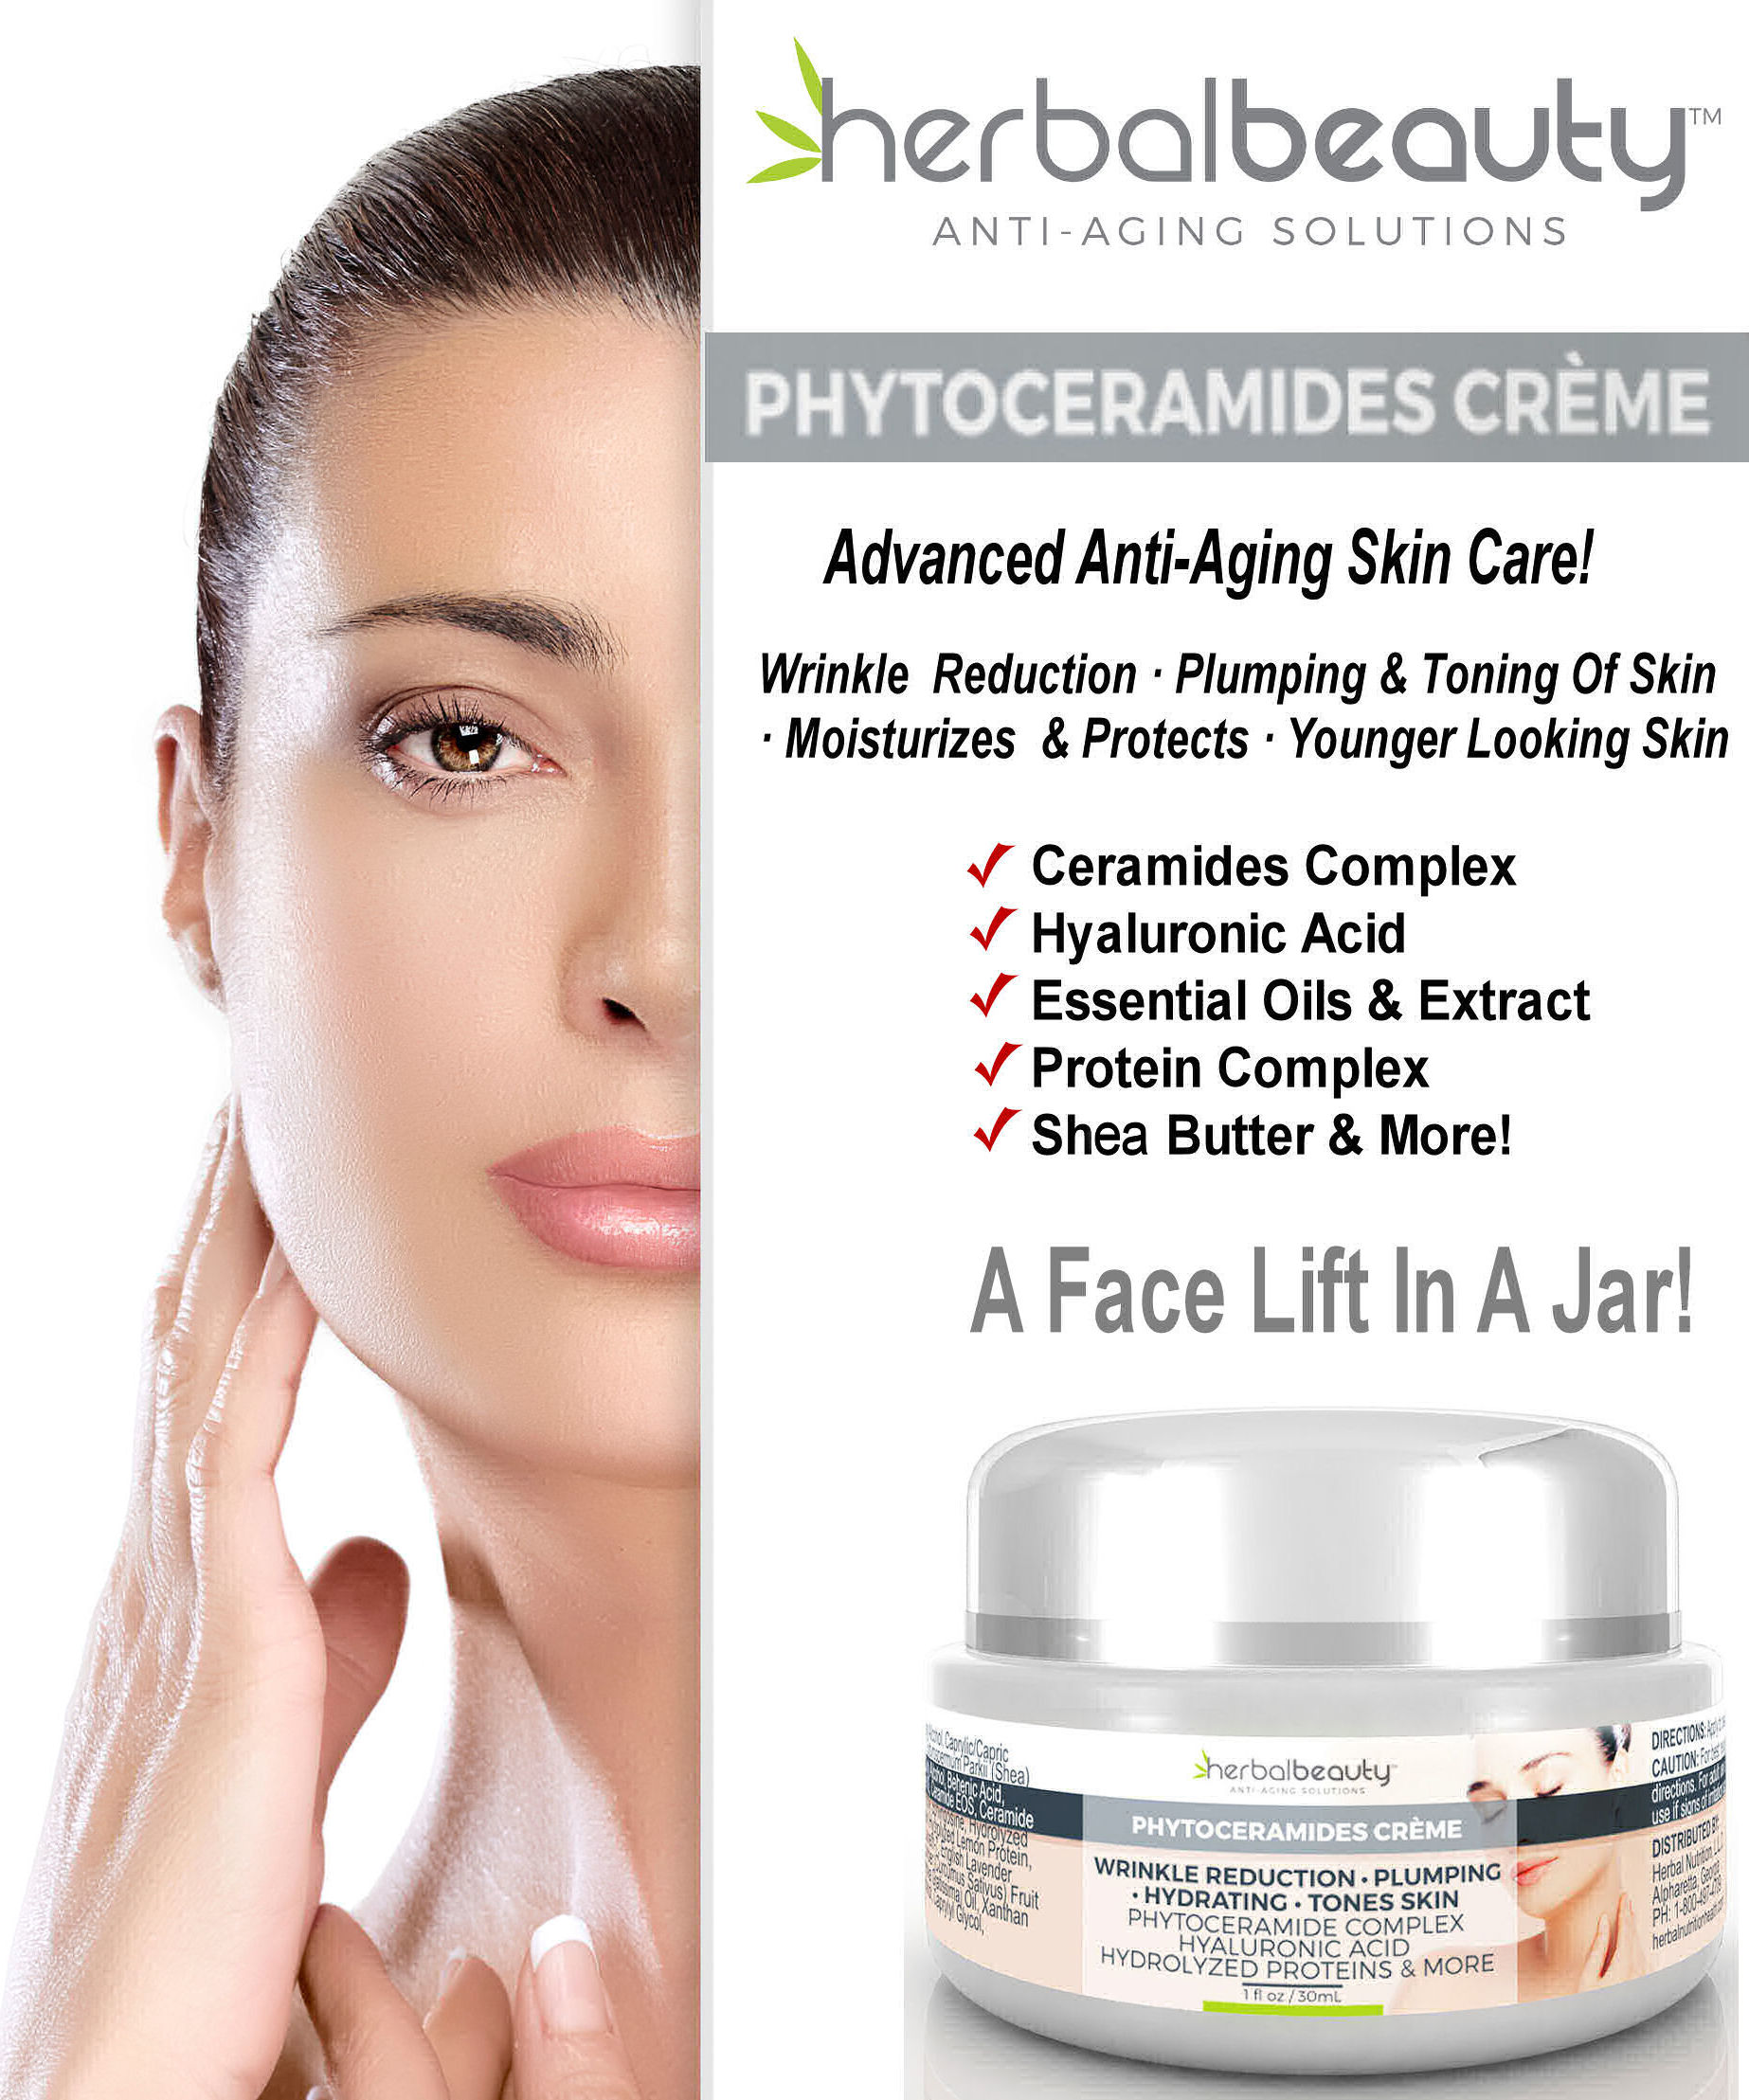 Phytoceramides Creme List of Benefits